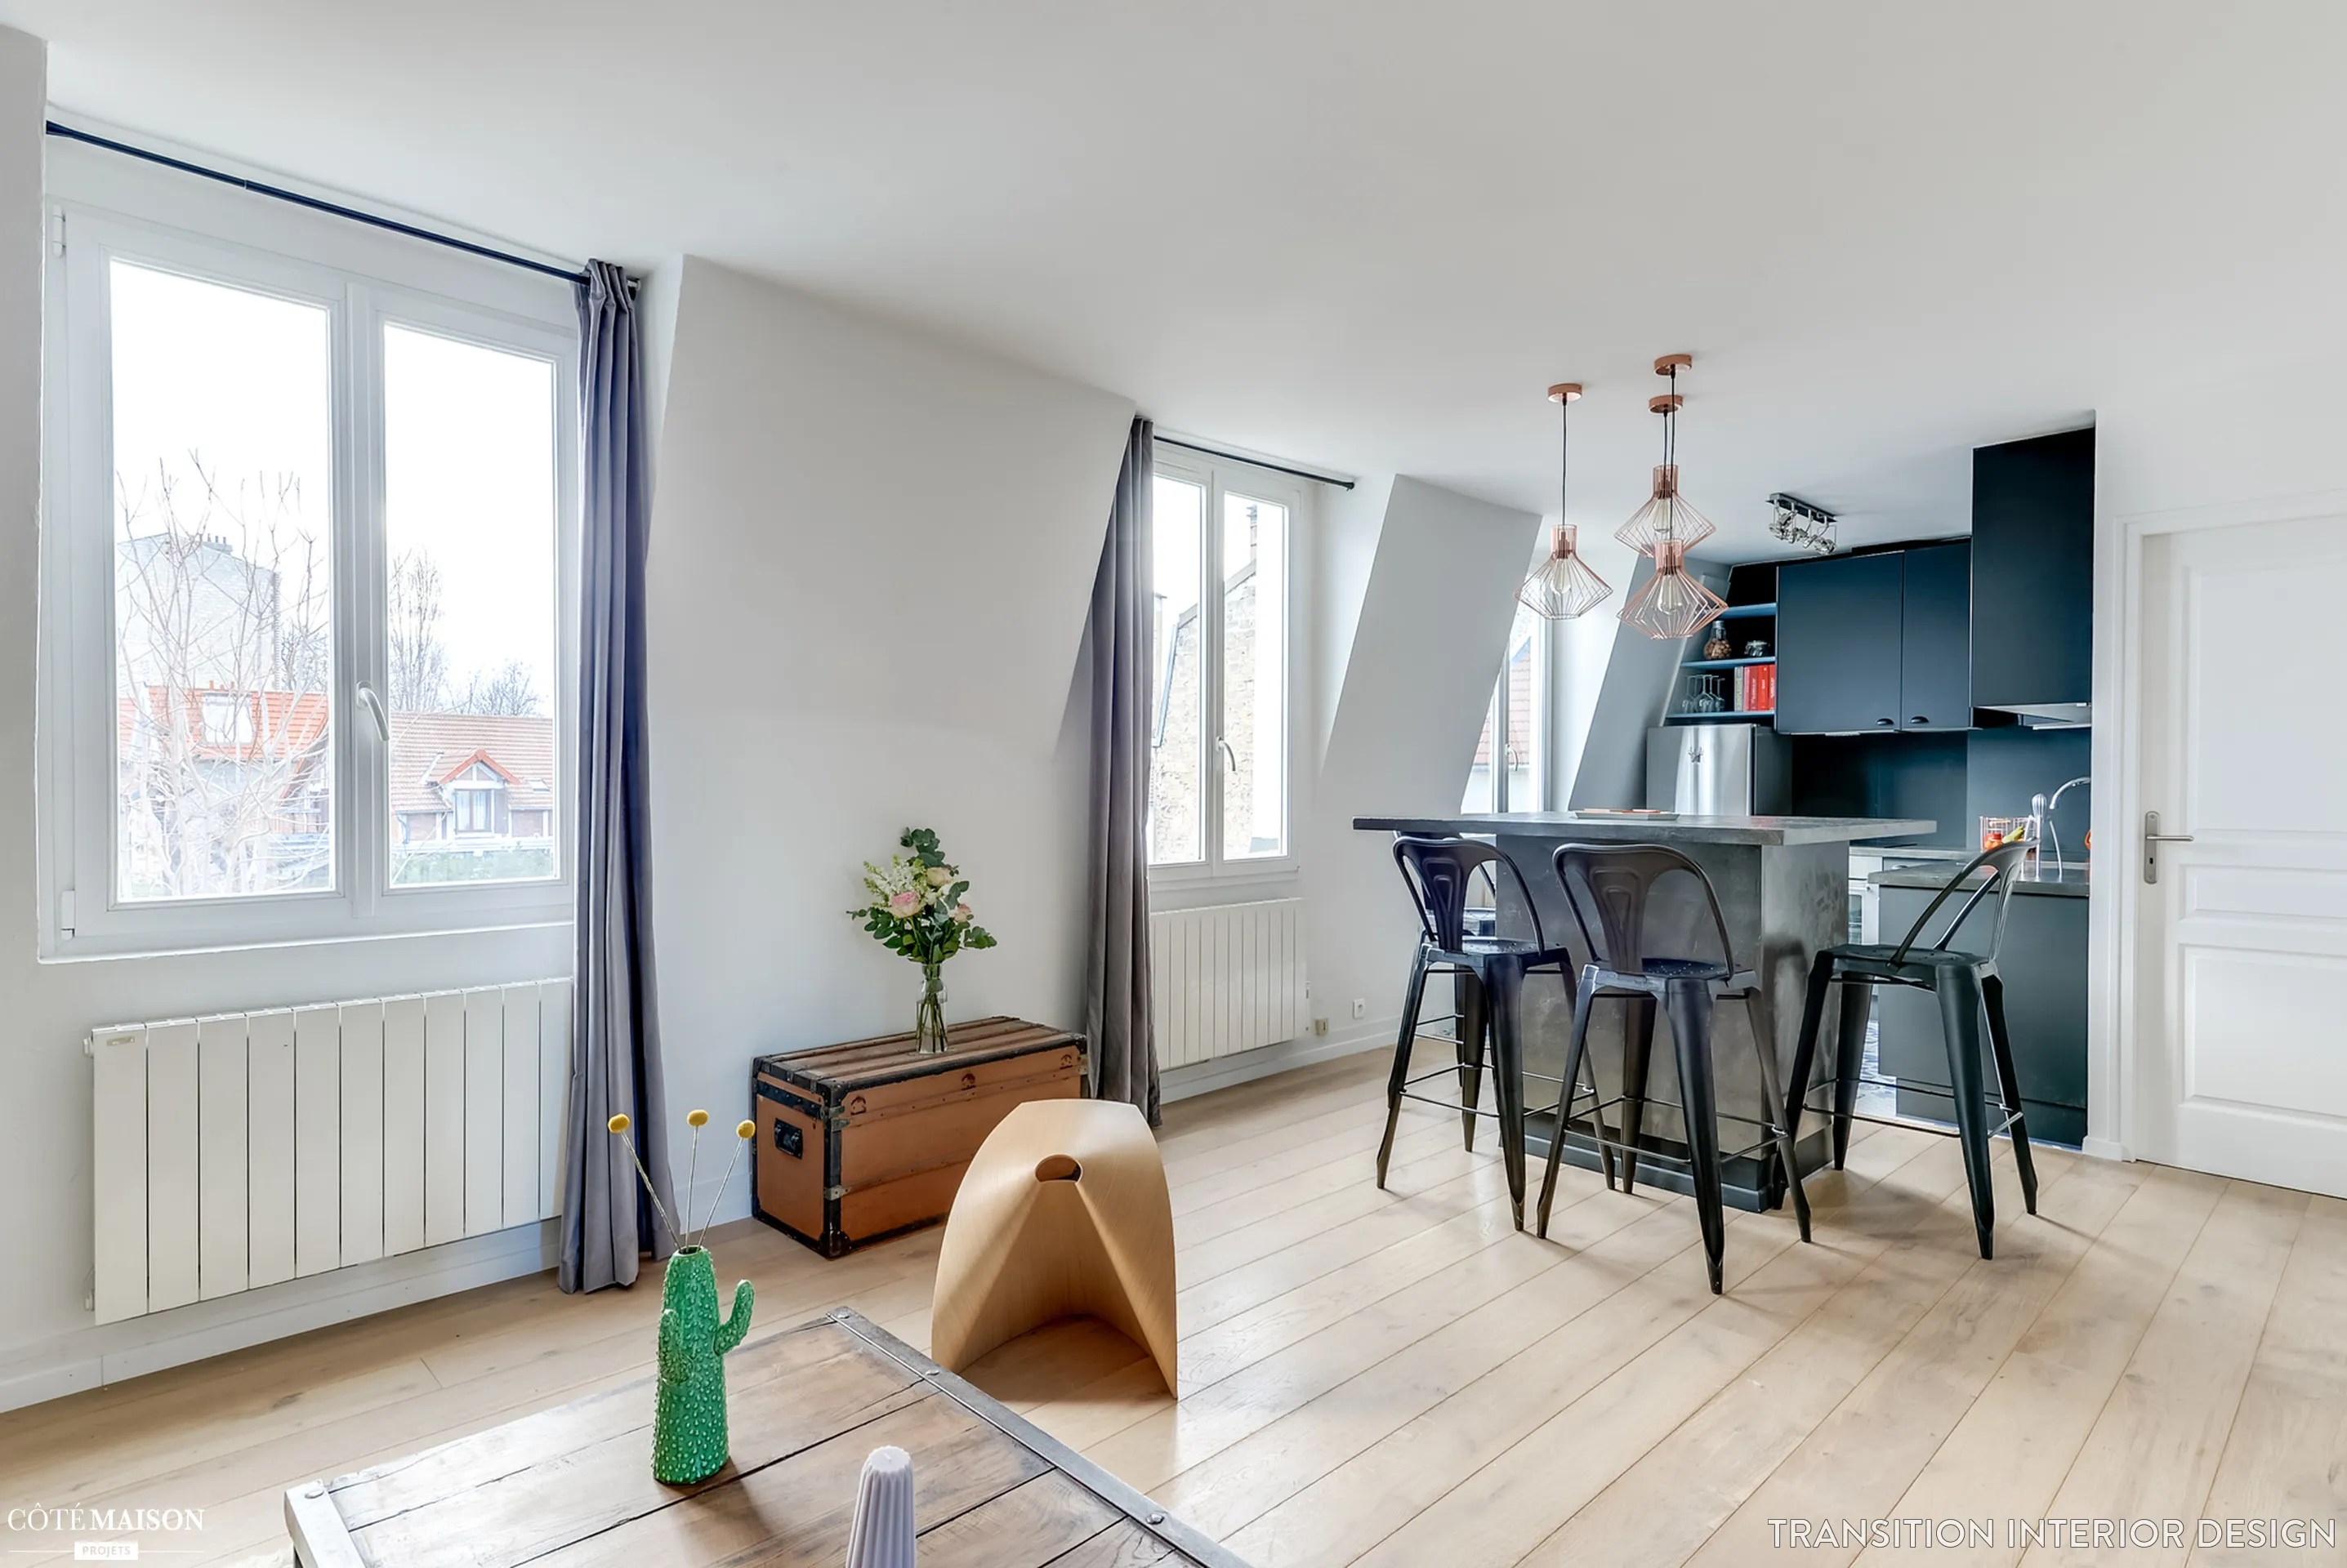 Rnovation complte dun appartement pour un jeune couple Transition Interior Design  Ct Maison